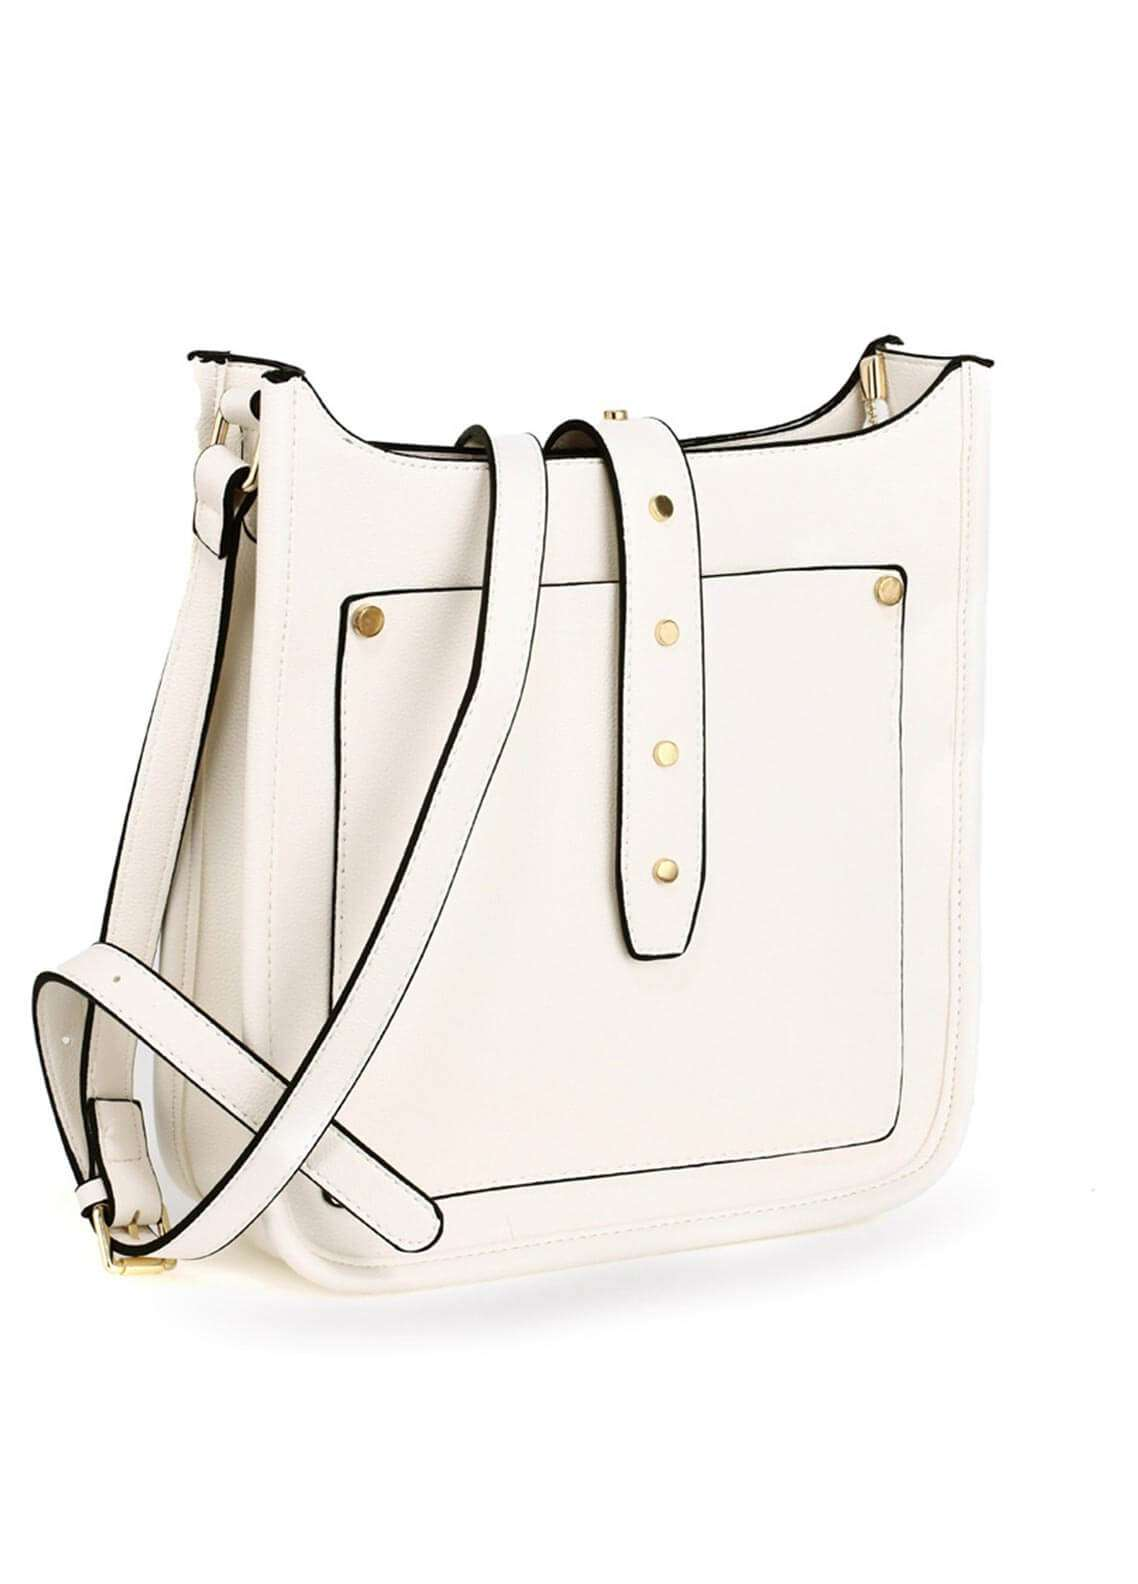 Anna Grace London Faux Leather Shoulder  Bags for Woman - White